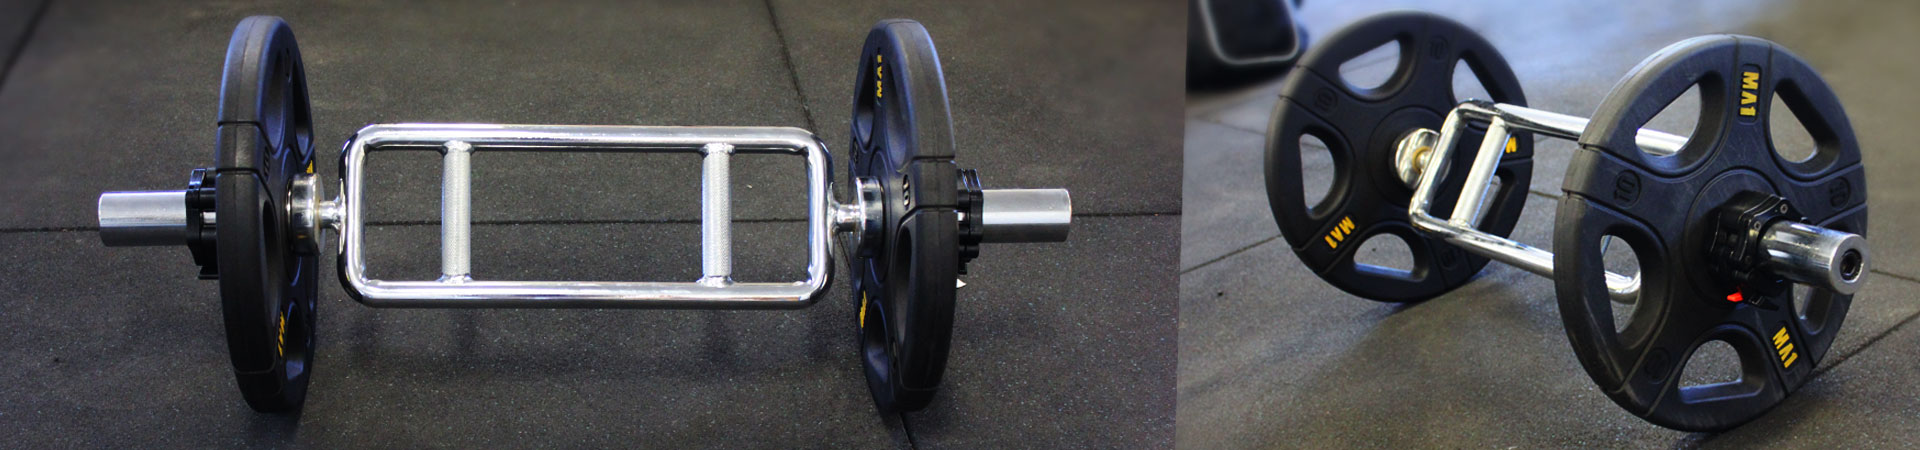 MA1 Olympic Tricep Barbell